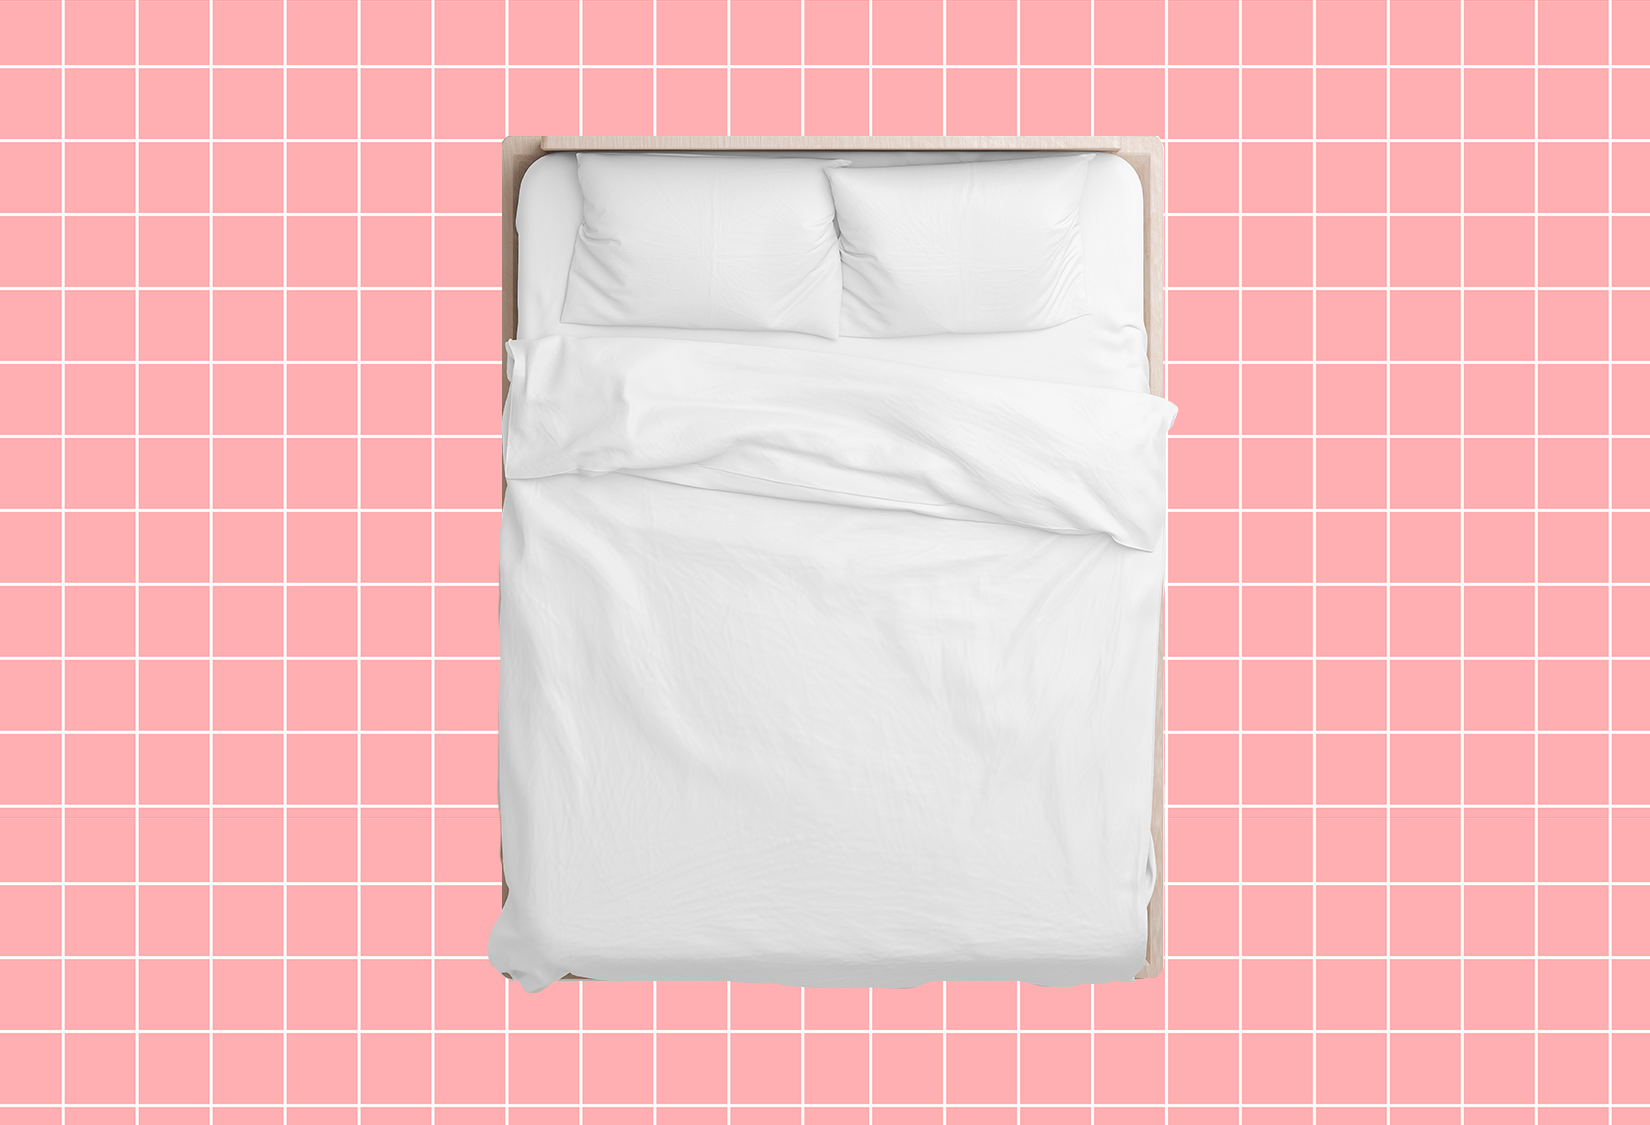 Innovative New Bedding Products, Mattress Topper